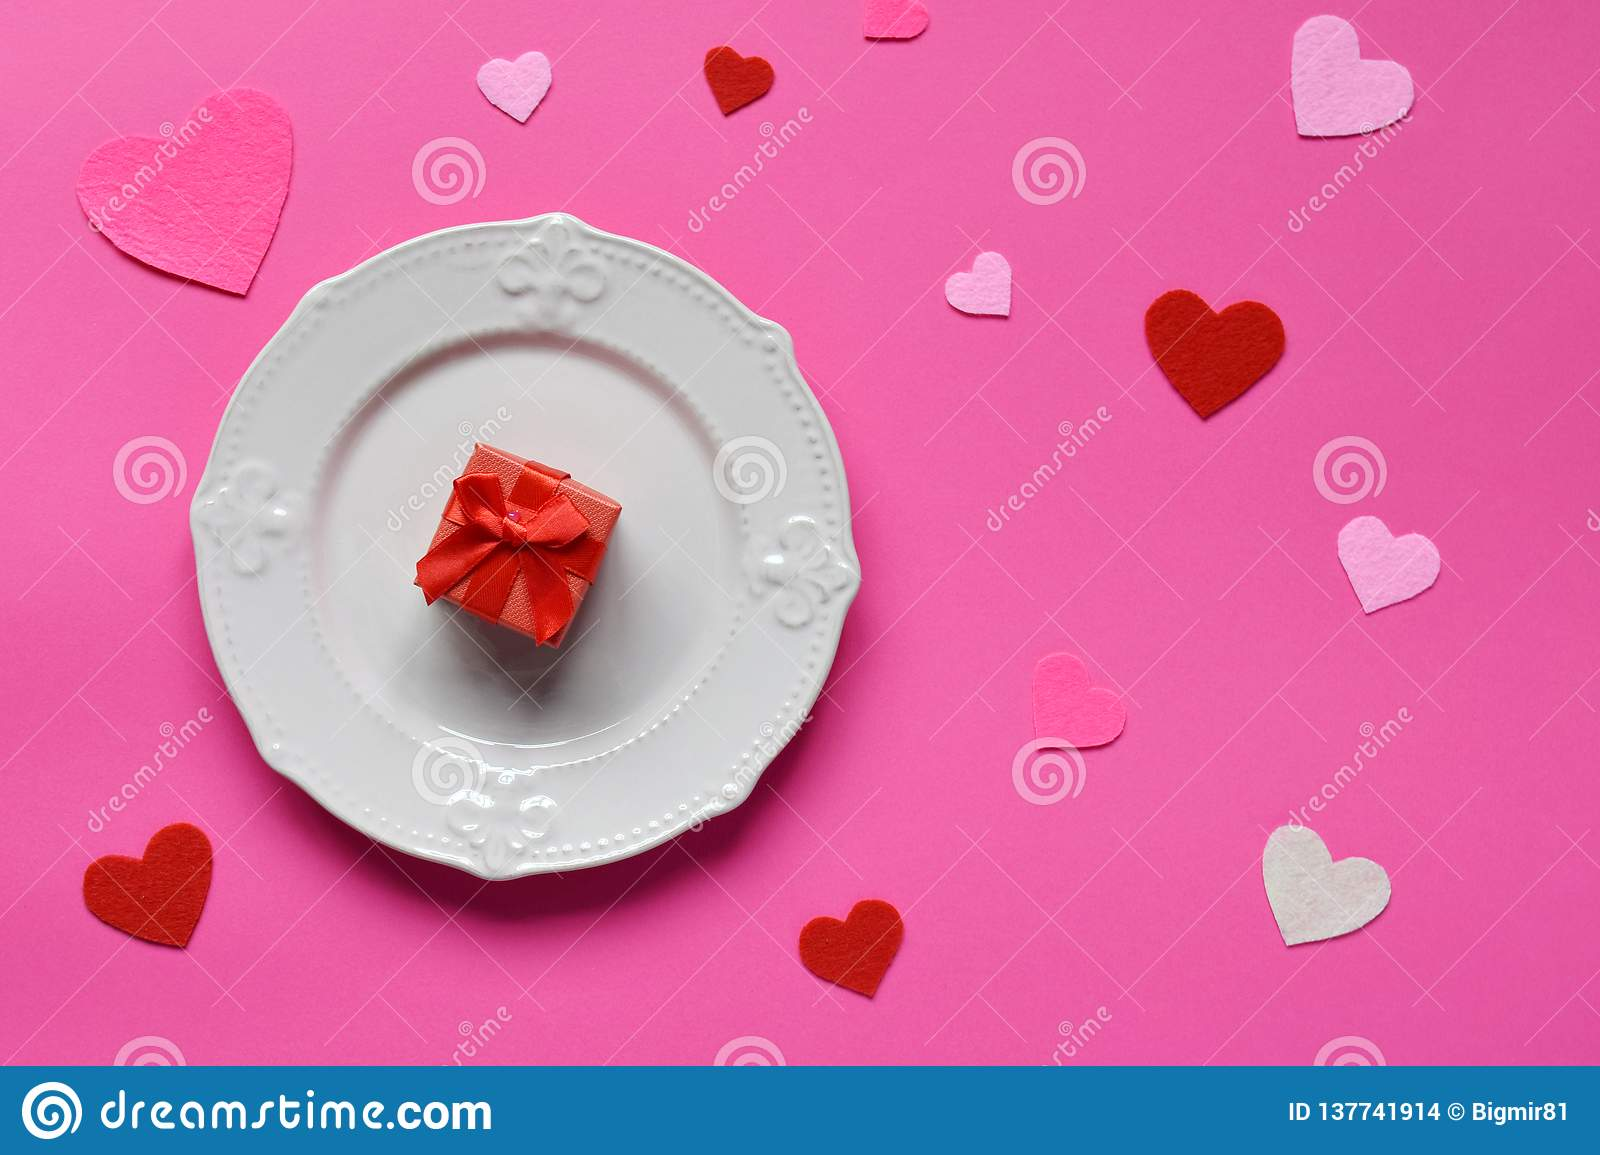 Empty pink plate, felt hearts and red gift on pink background. St. Valentine& x27;s Day concept. Top view, flat lay. Copy space